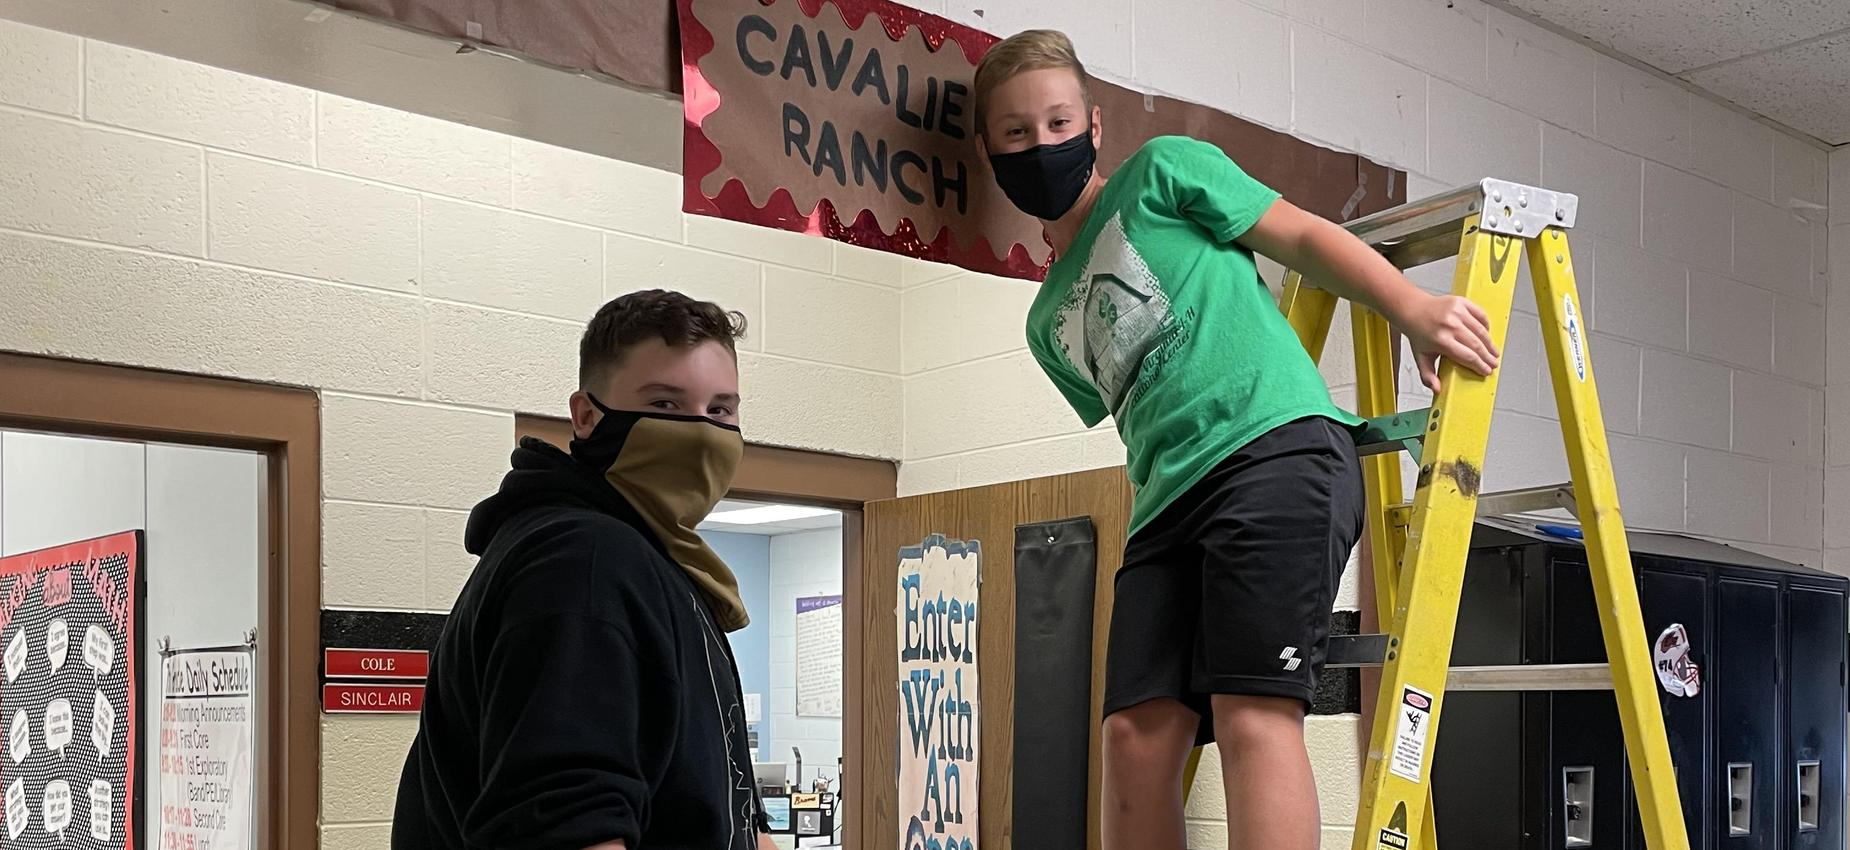 Two students stand on ladders in front of a classroom.